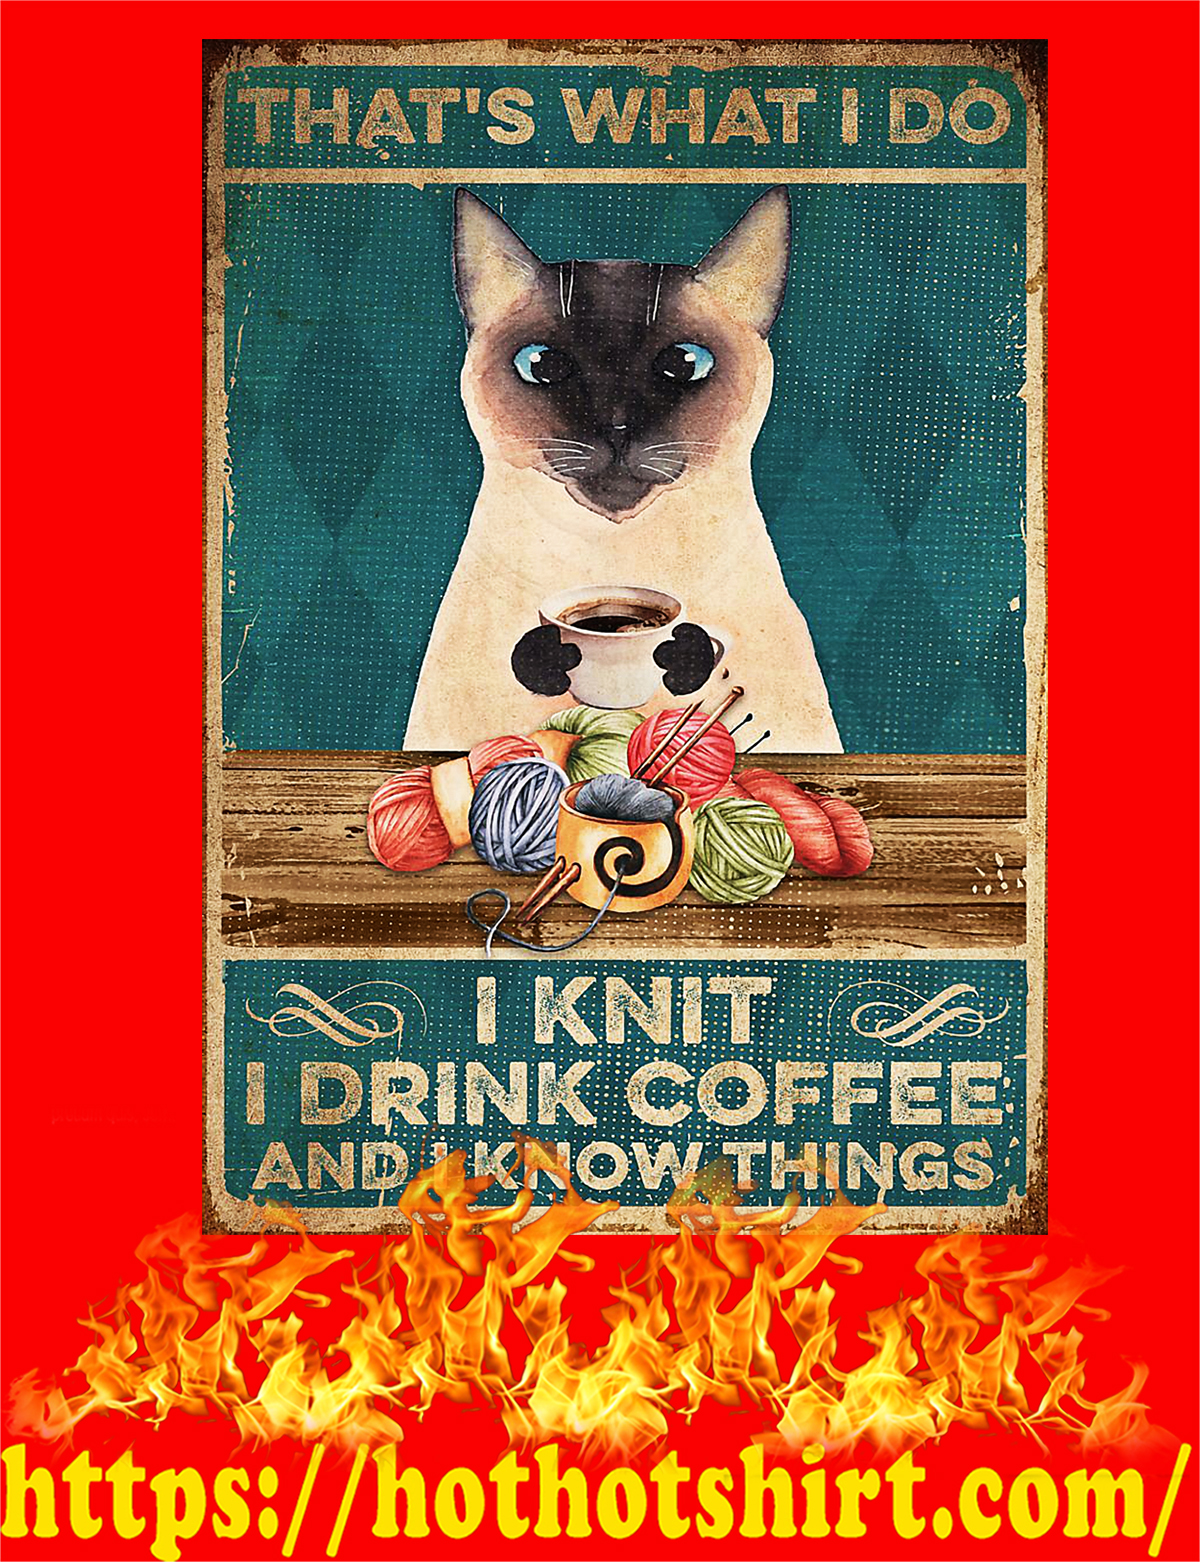 Cat That's what i do i knit i drink coffee and i know things poster - A3